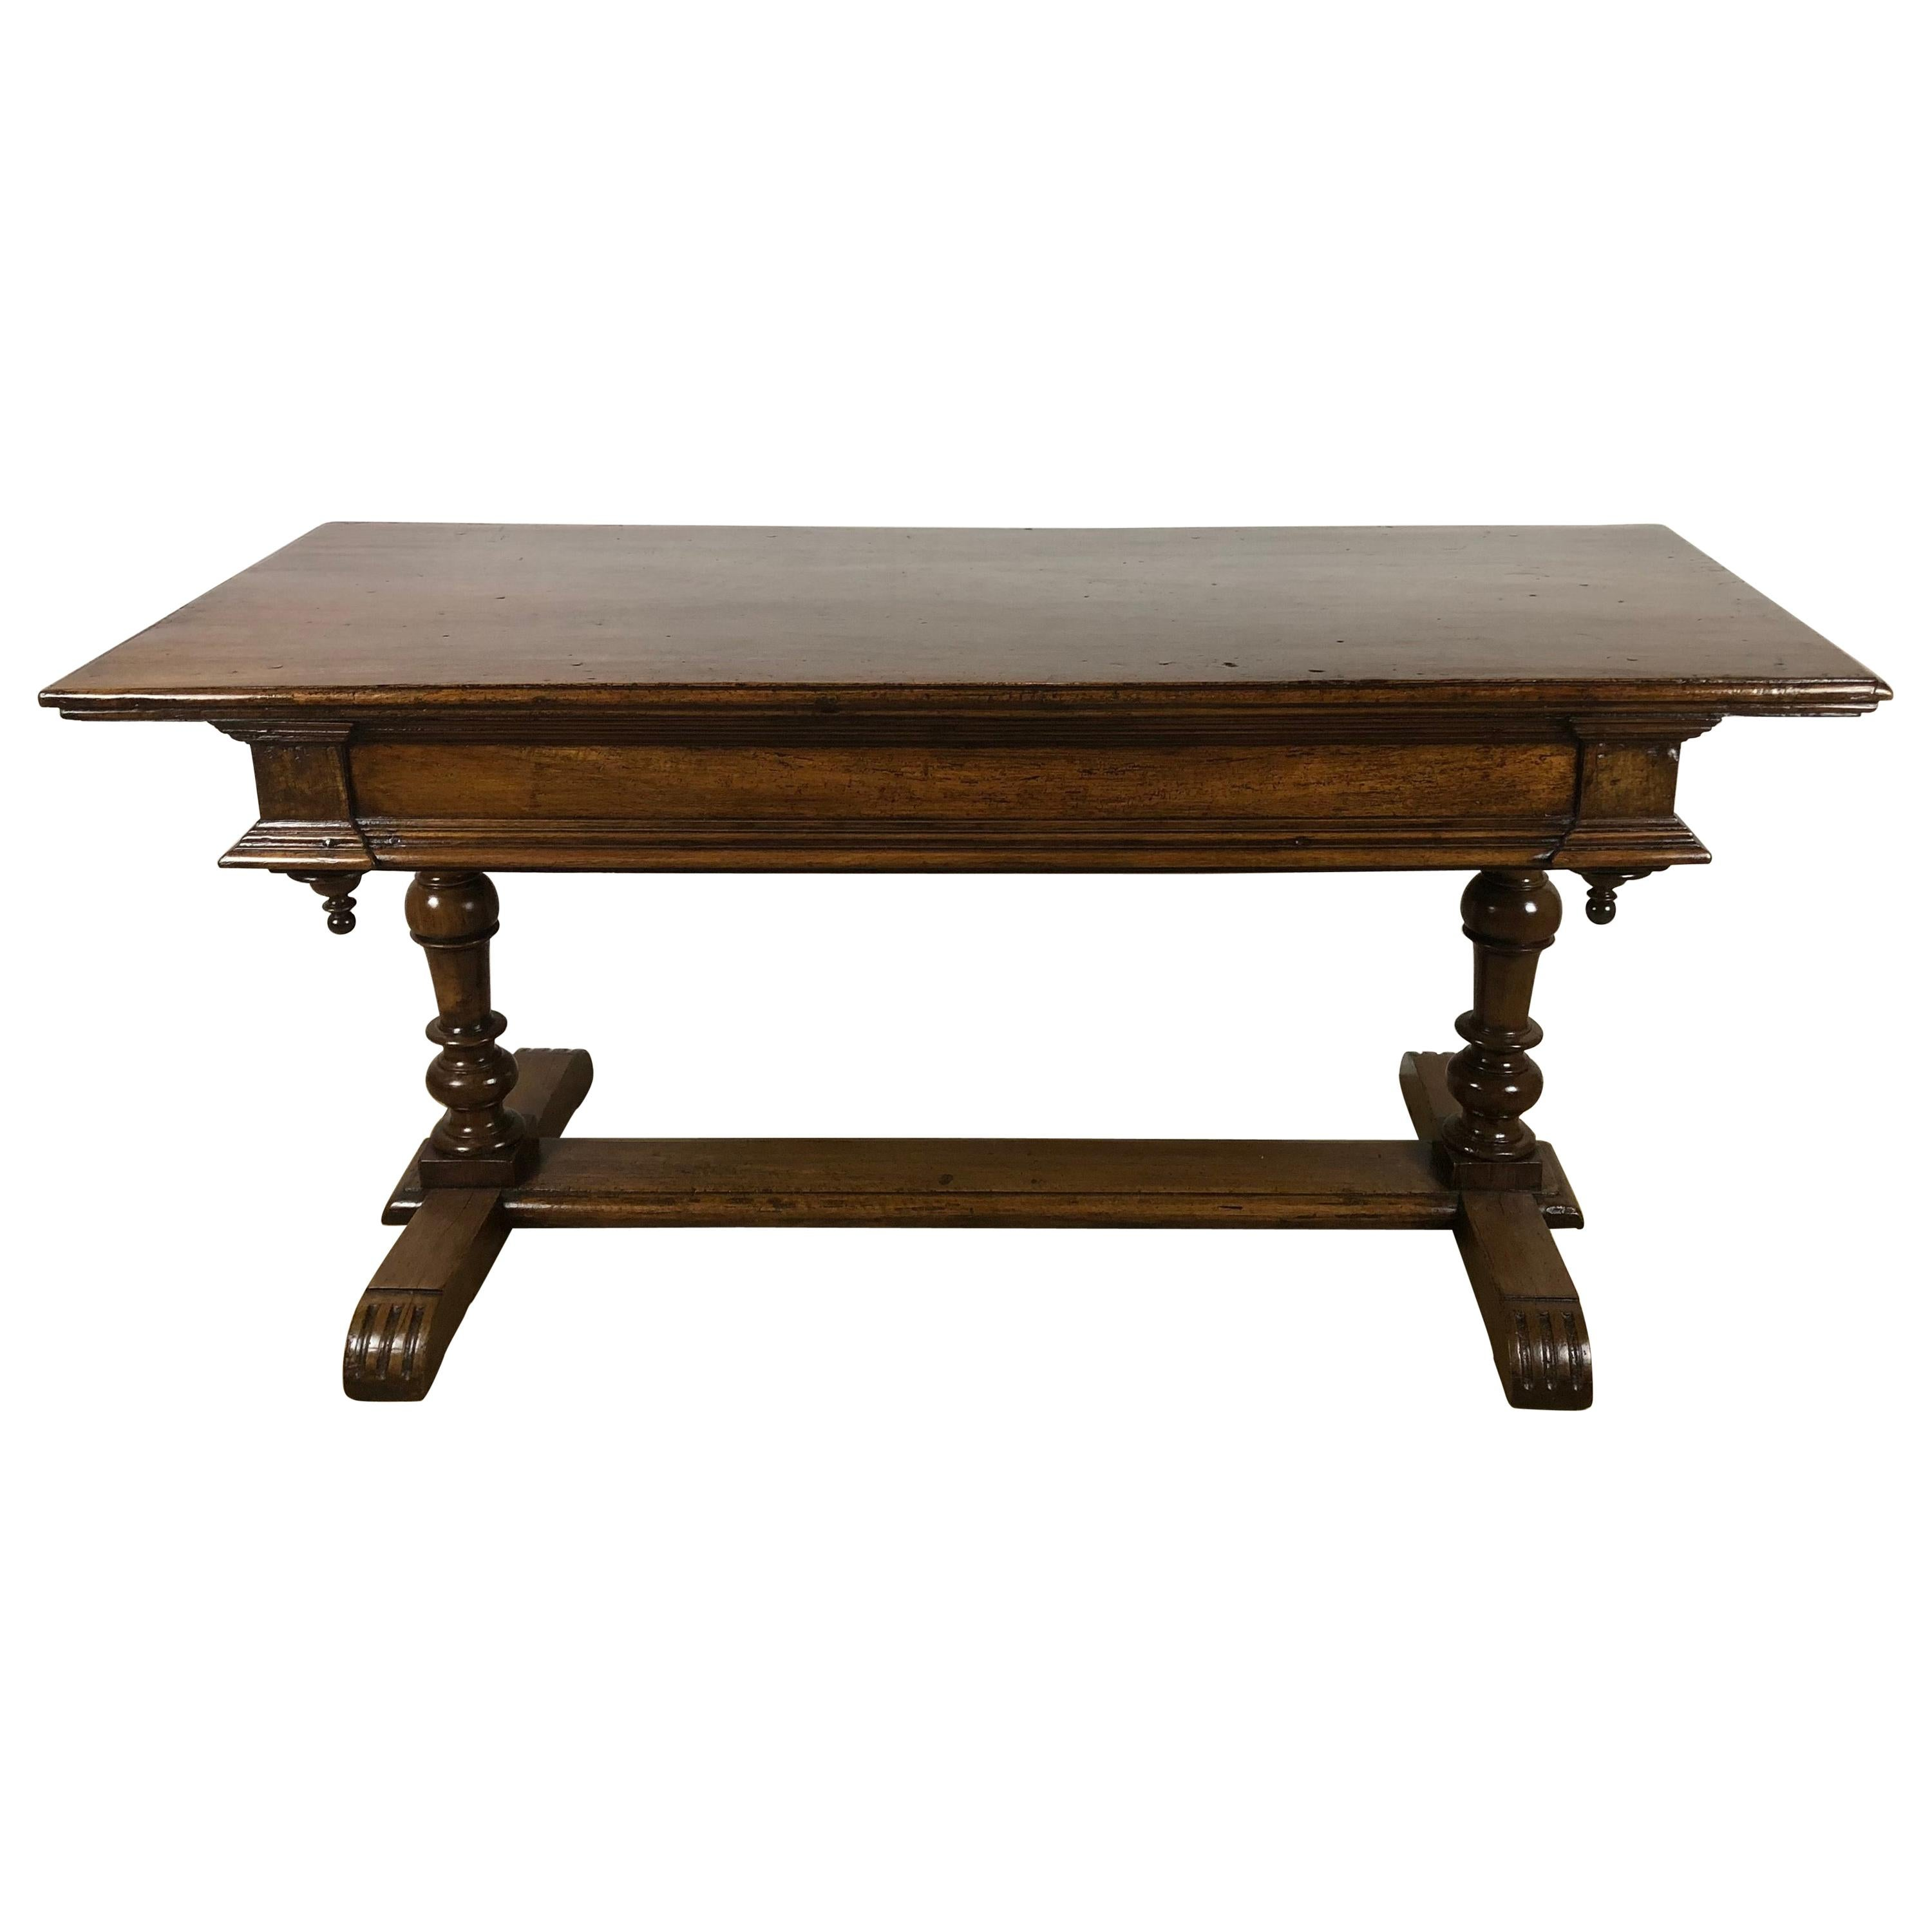 Original 18th Century French Louis XIII Walnut Library, Console, Display Table